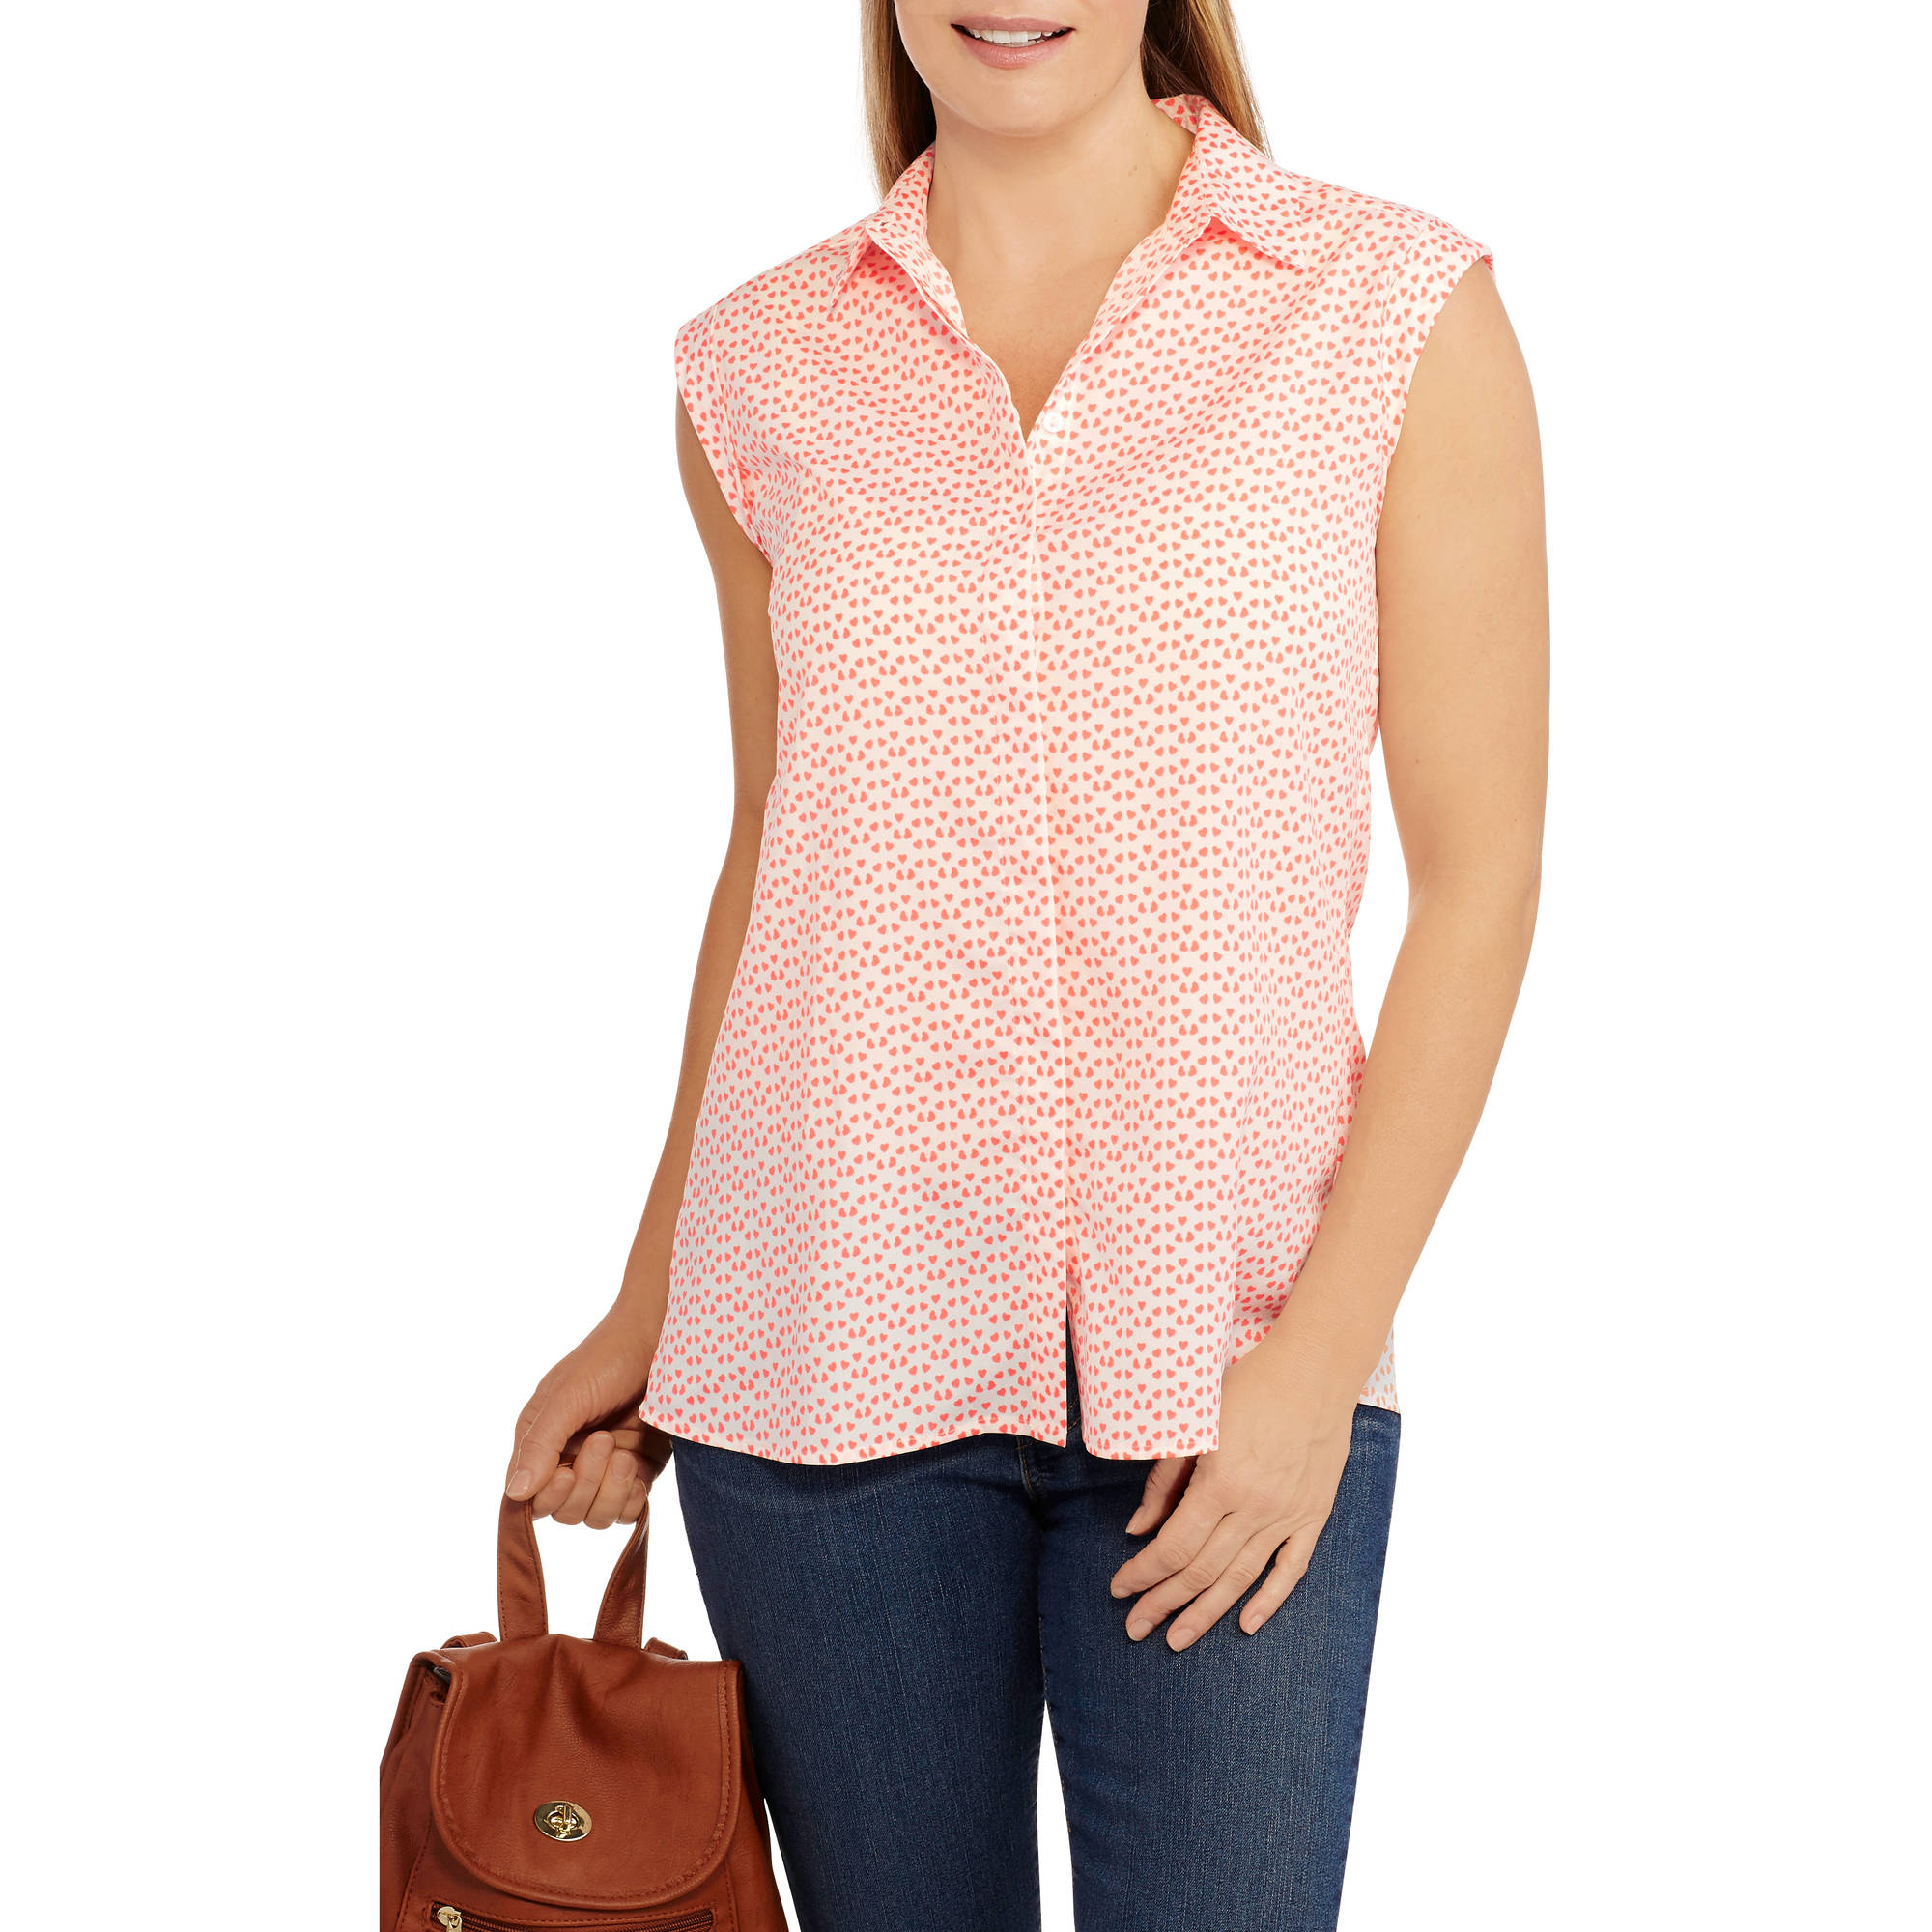 Millennium Women's Printed Cap Sleeve Collared Blouse